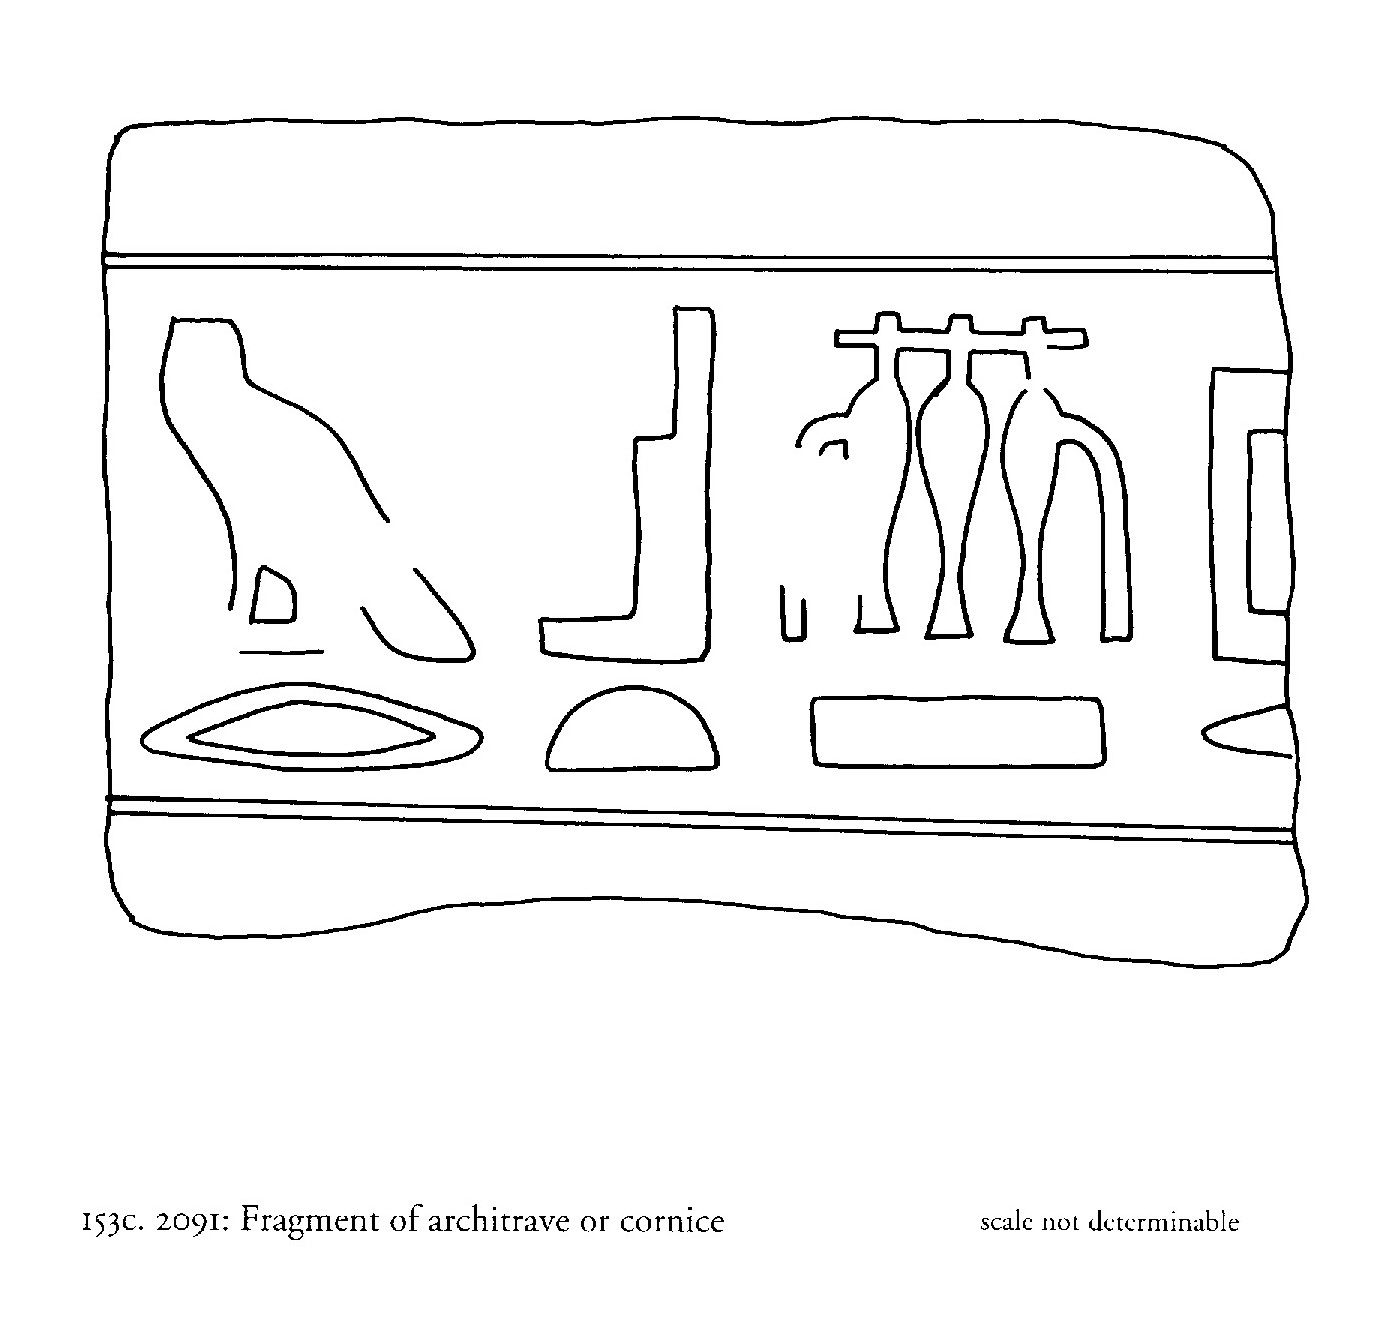 Drawings: G 2091: relief from architrave or cornice fragment